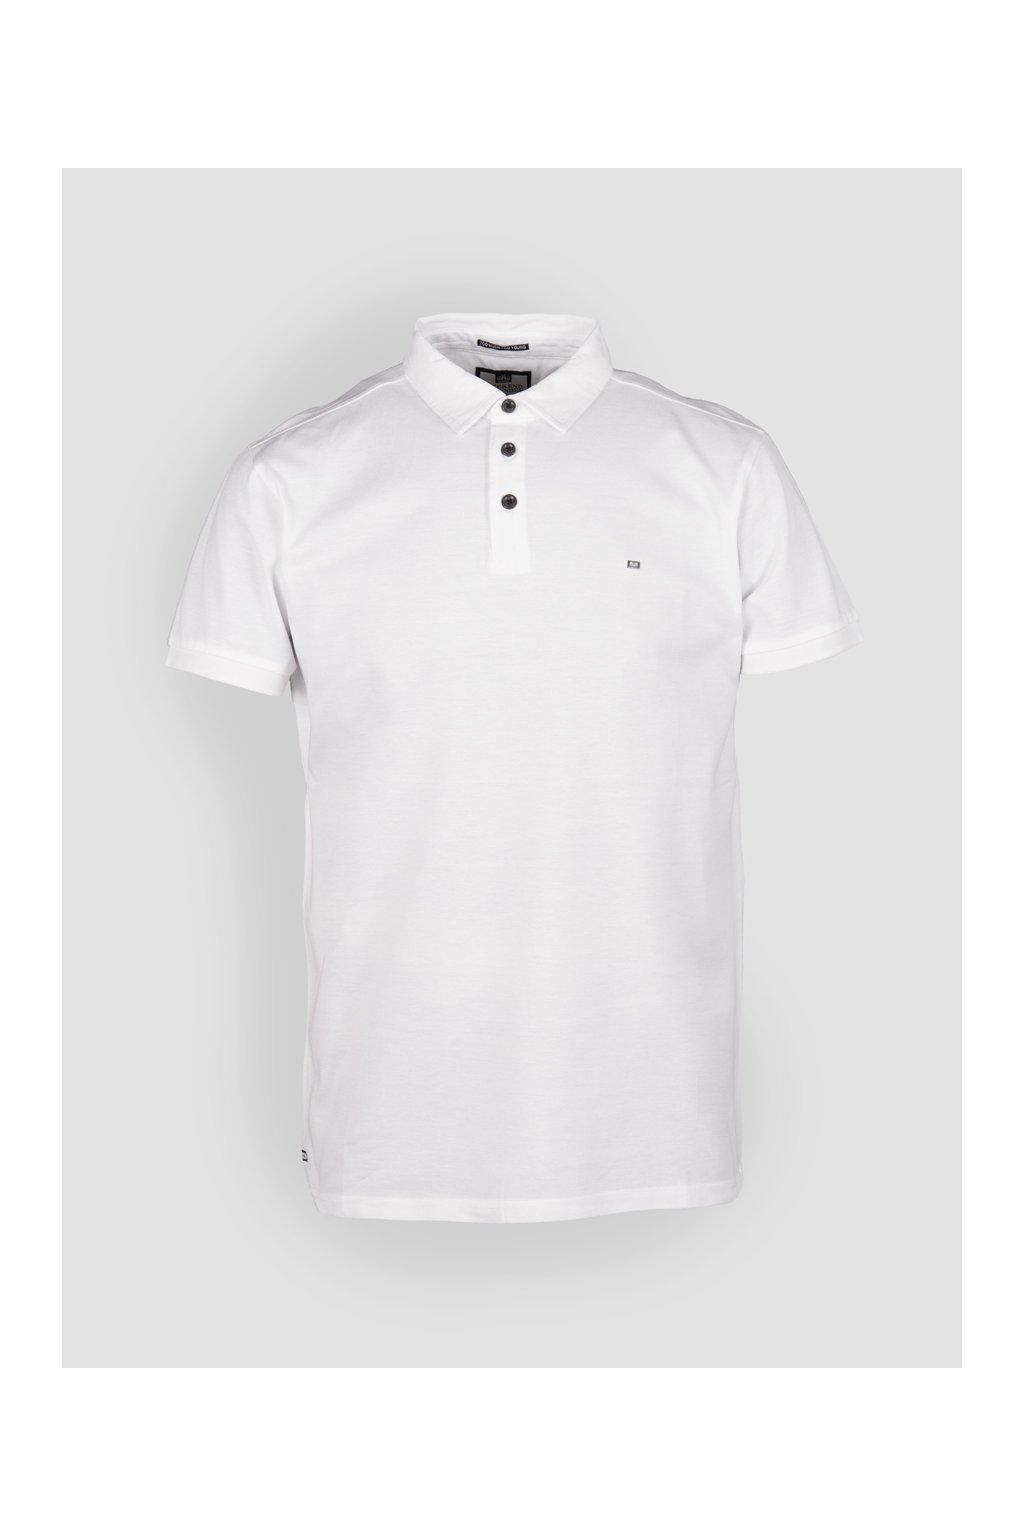 POSS18 11 HAMMETT MERCERISED COTTON SMART PIQUE POLO WHITE